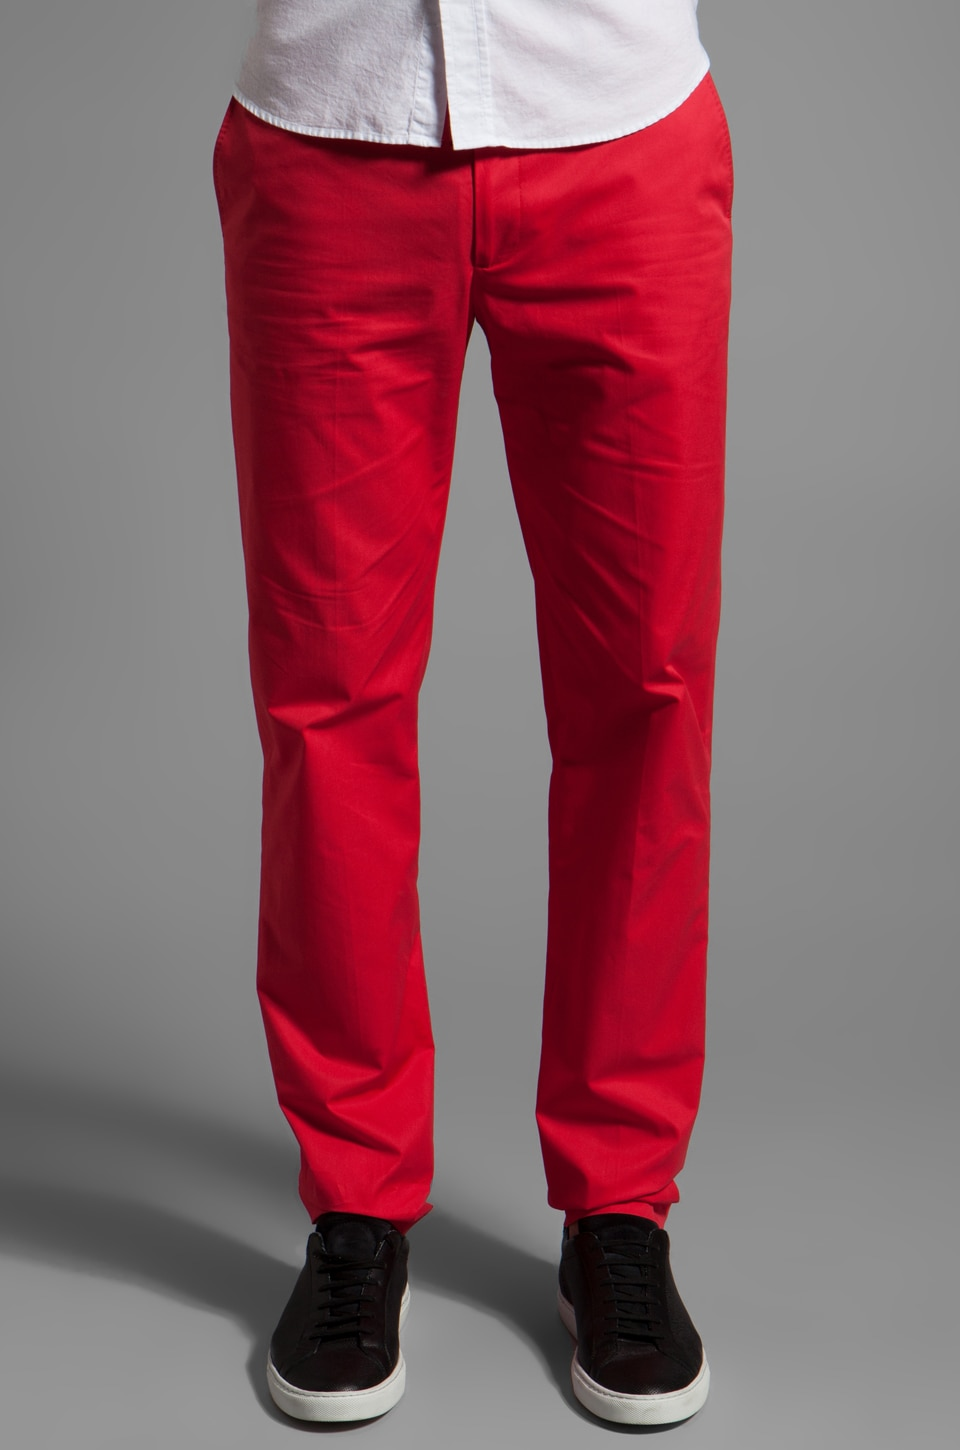 Marc by Marc Jacobs Harvey Twill Pant in Scarlet